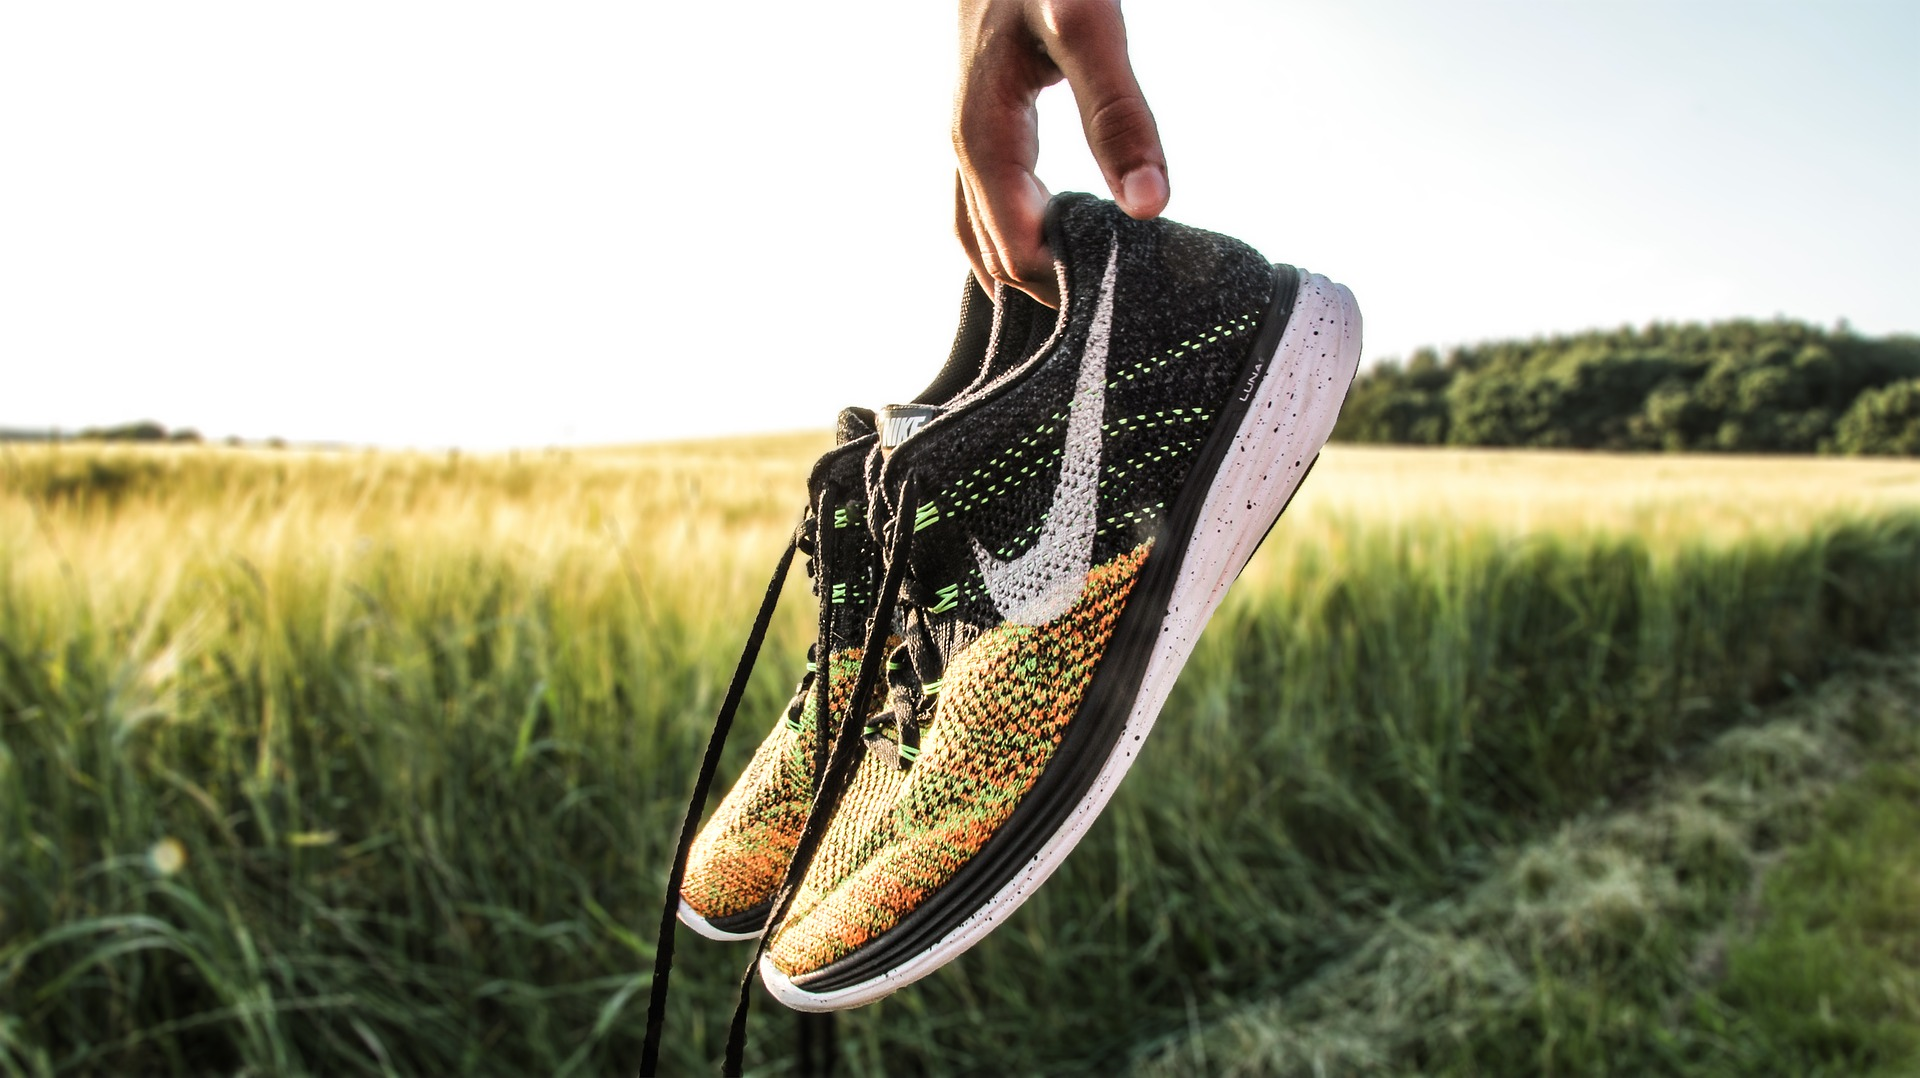 How to Choose The Right Sneakers for Your Workout  - Don't Make Your Choice Based on Brand